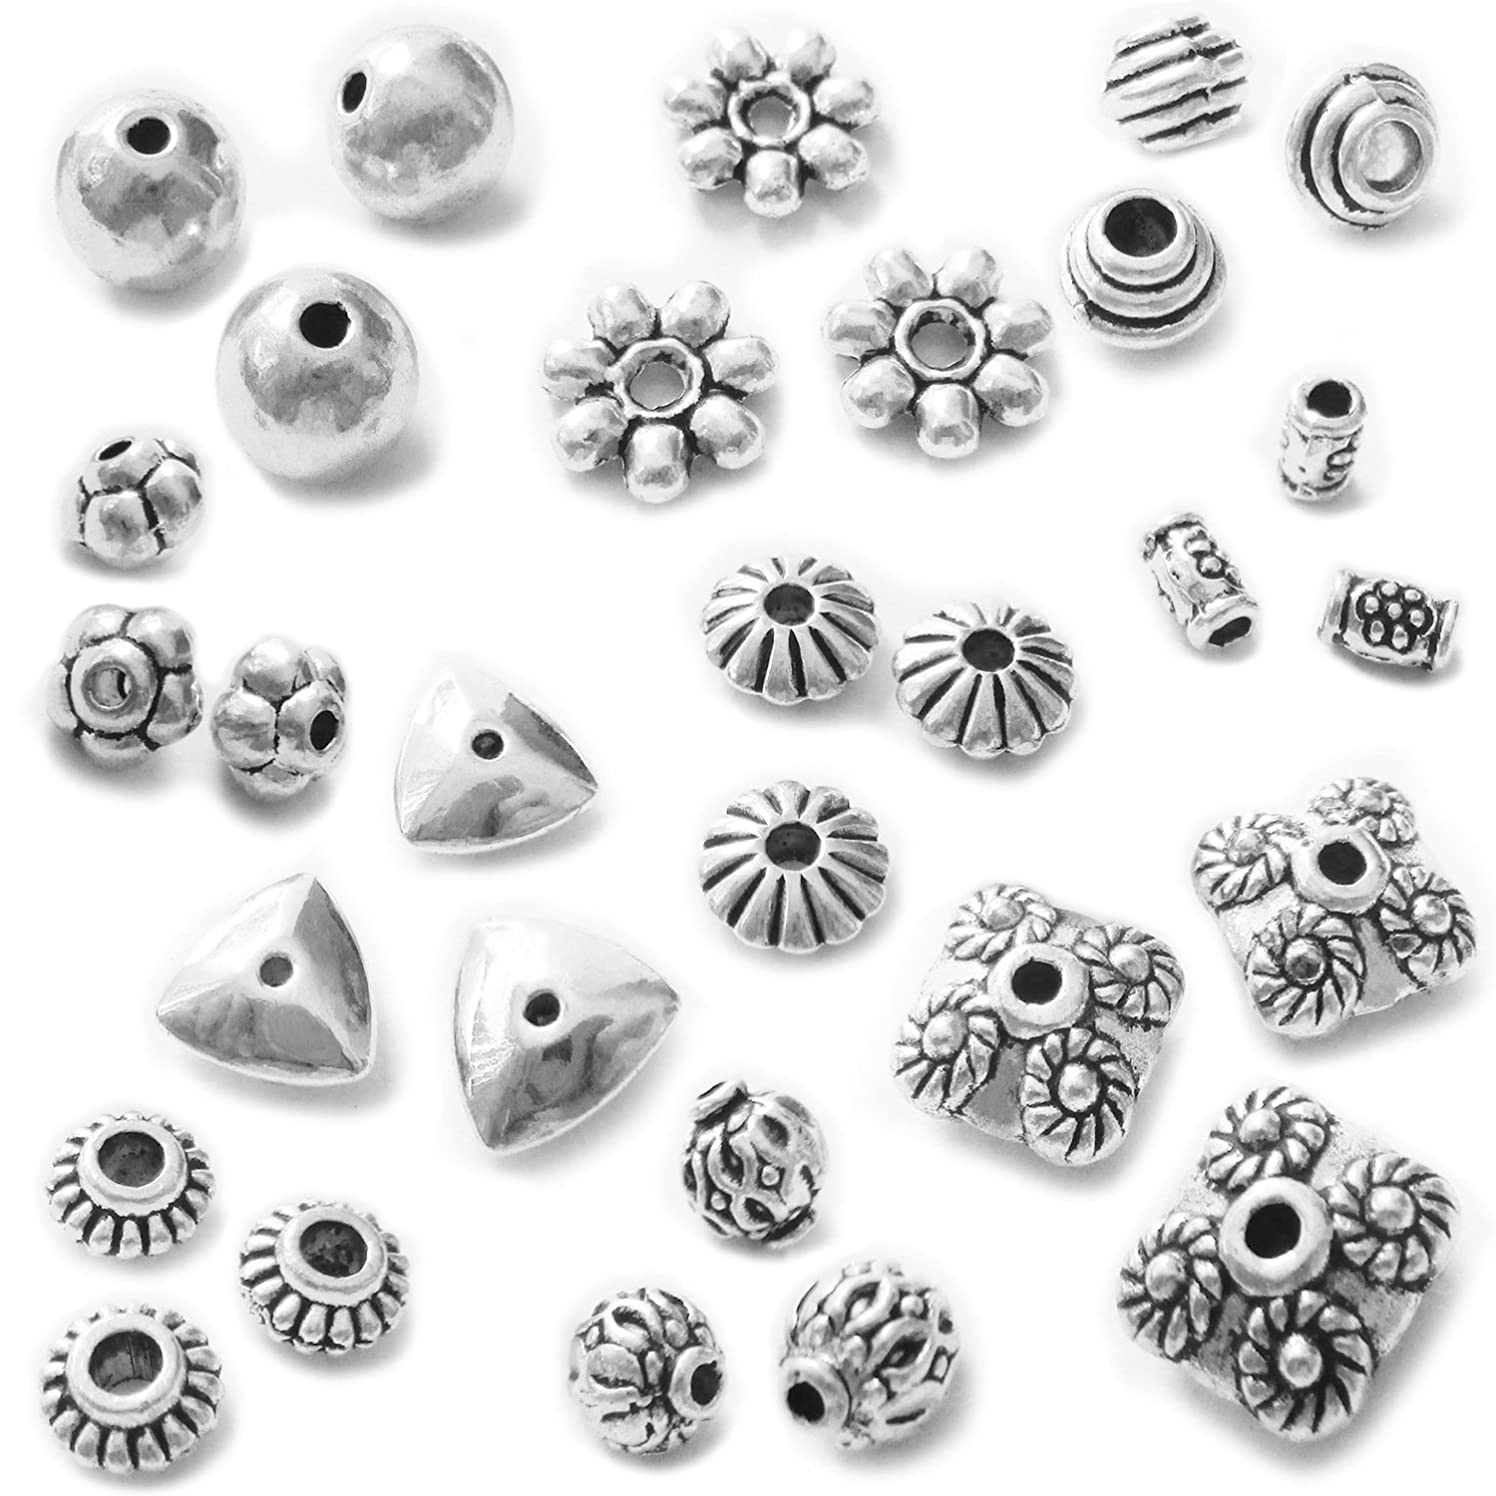 Heather's cf 268 Pieces Silver Beads Bead?spacers Bead?Jewelry Making Supplies